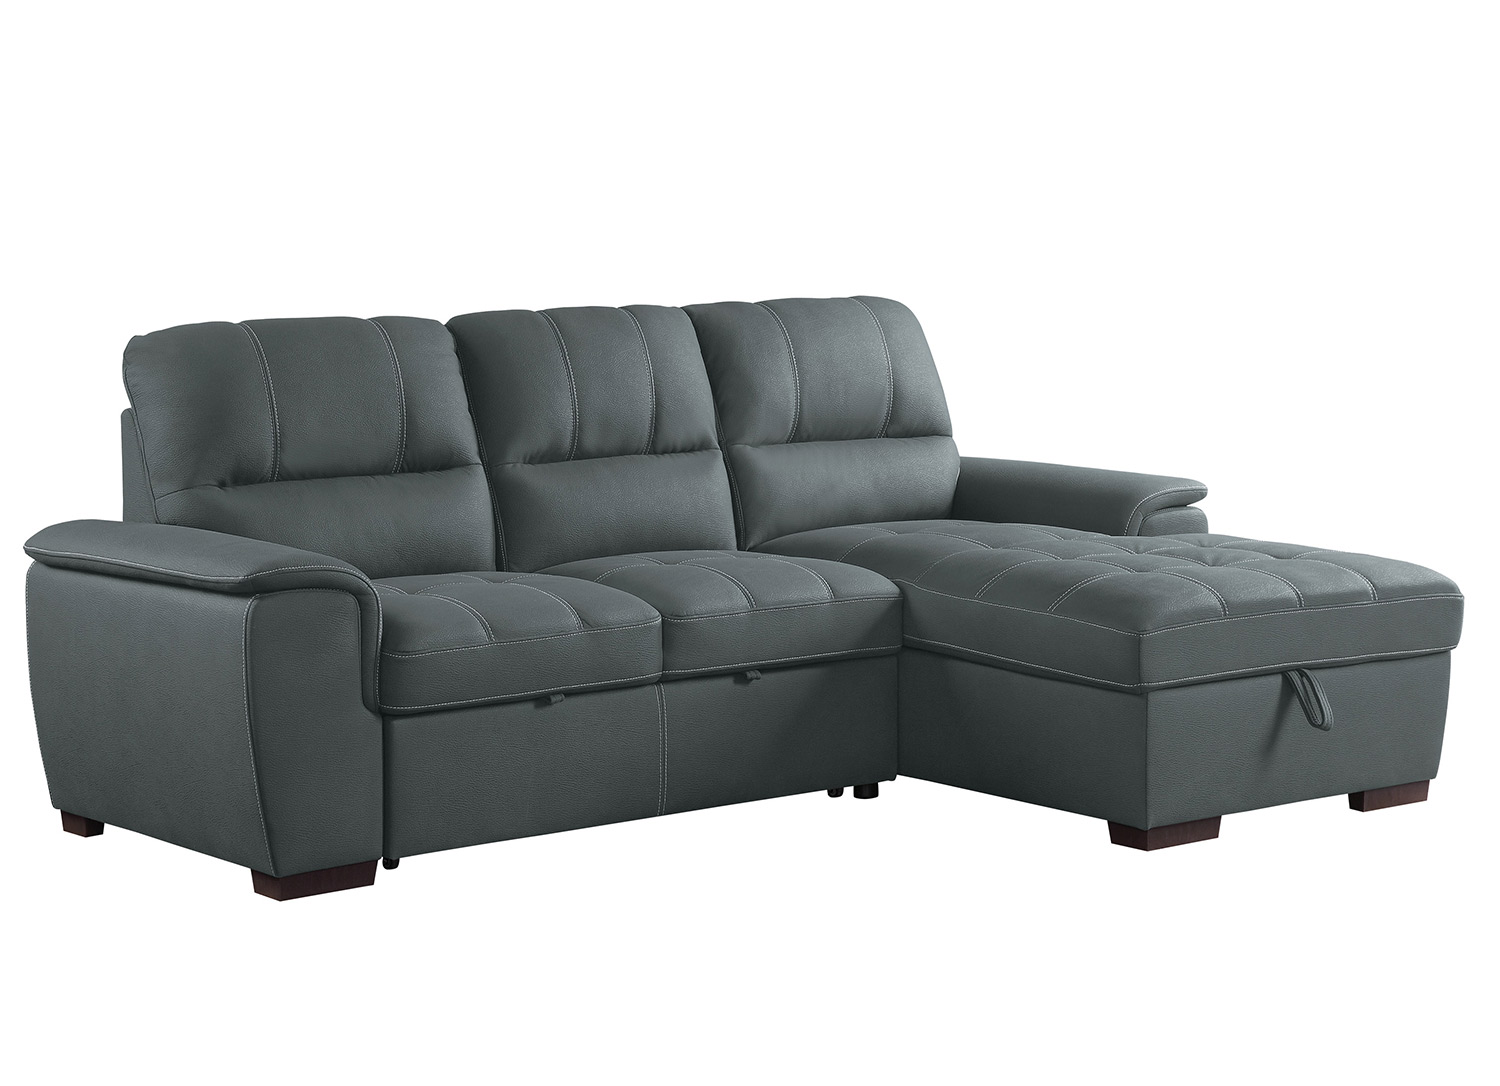 Homelegance Andes Sectional with Pull-out Bed and Hidden Storage - Gray